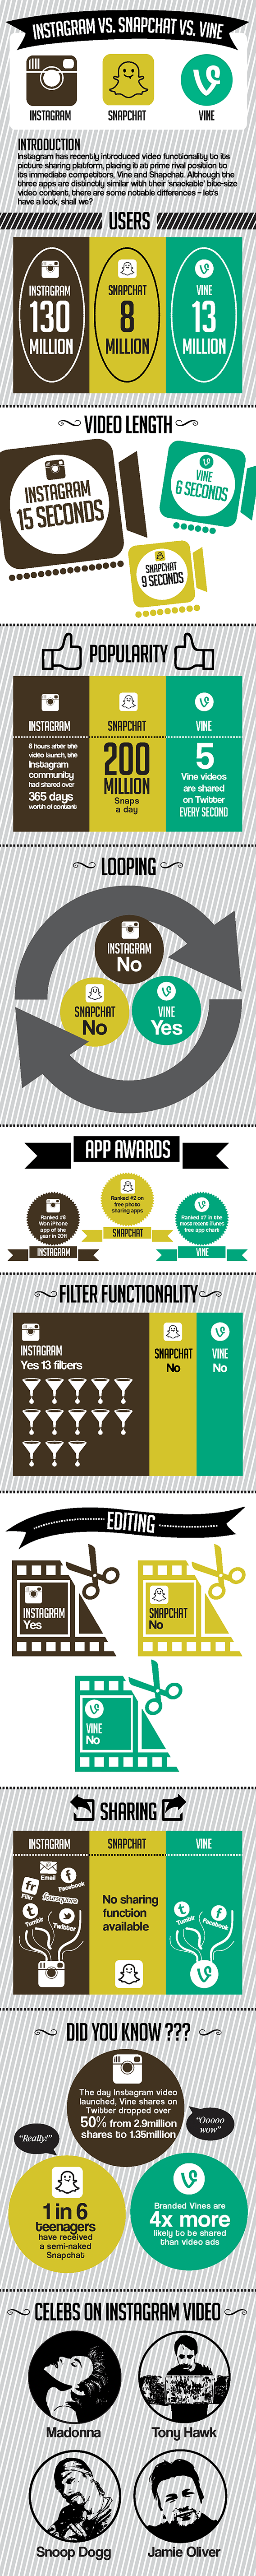 social-video-infographic